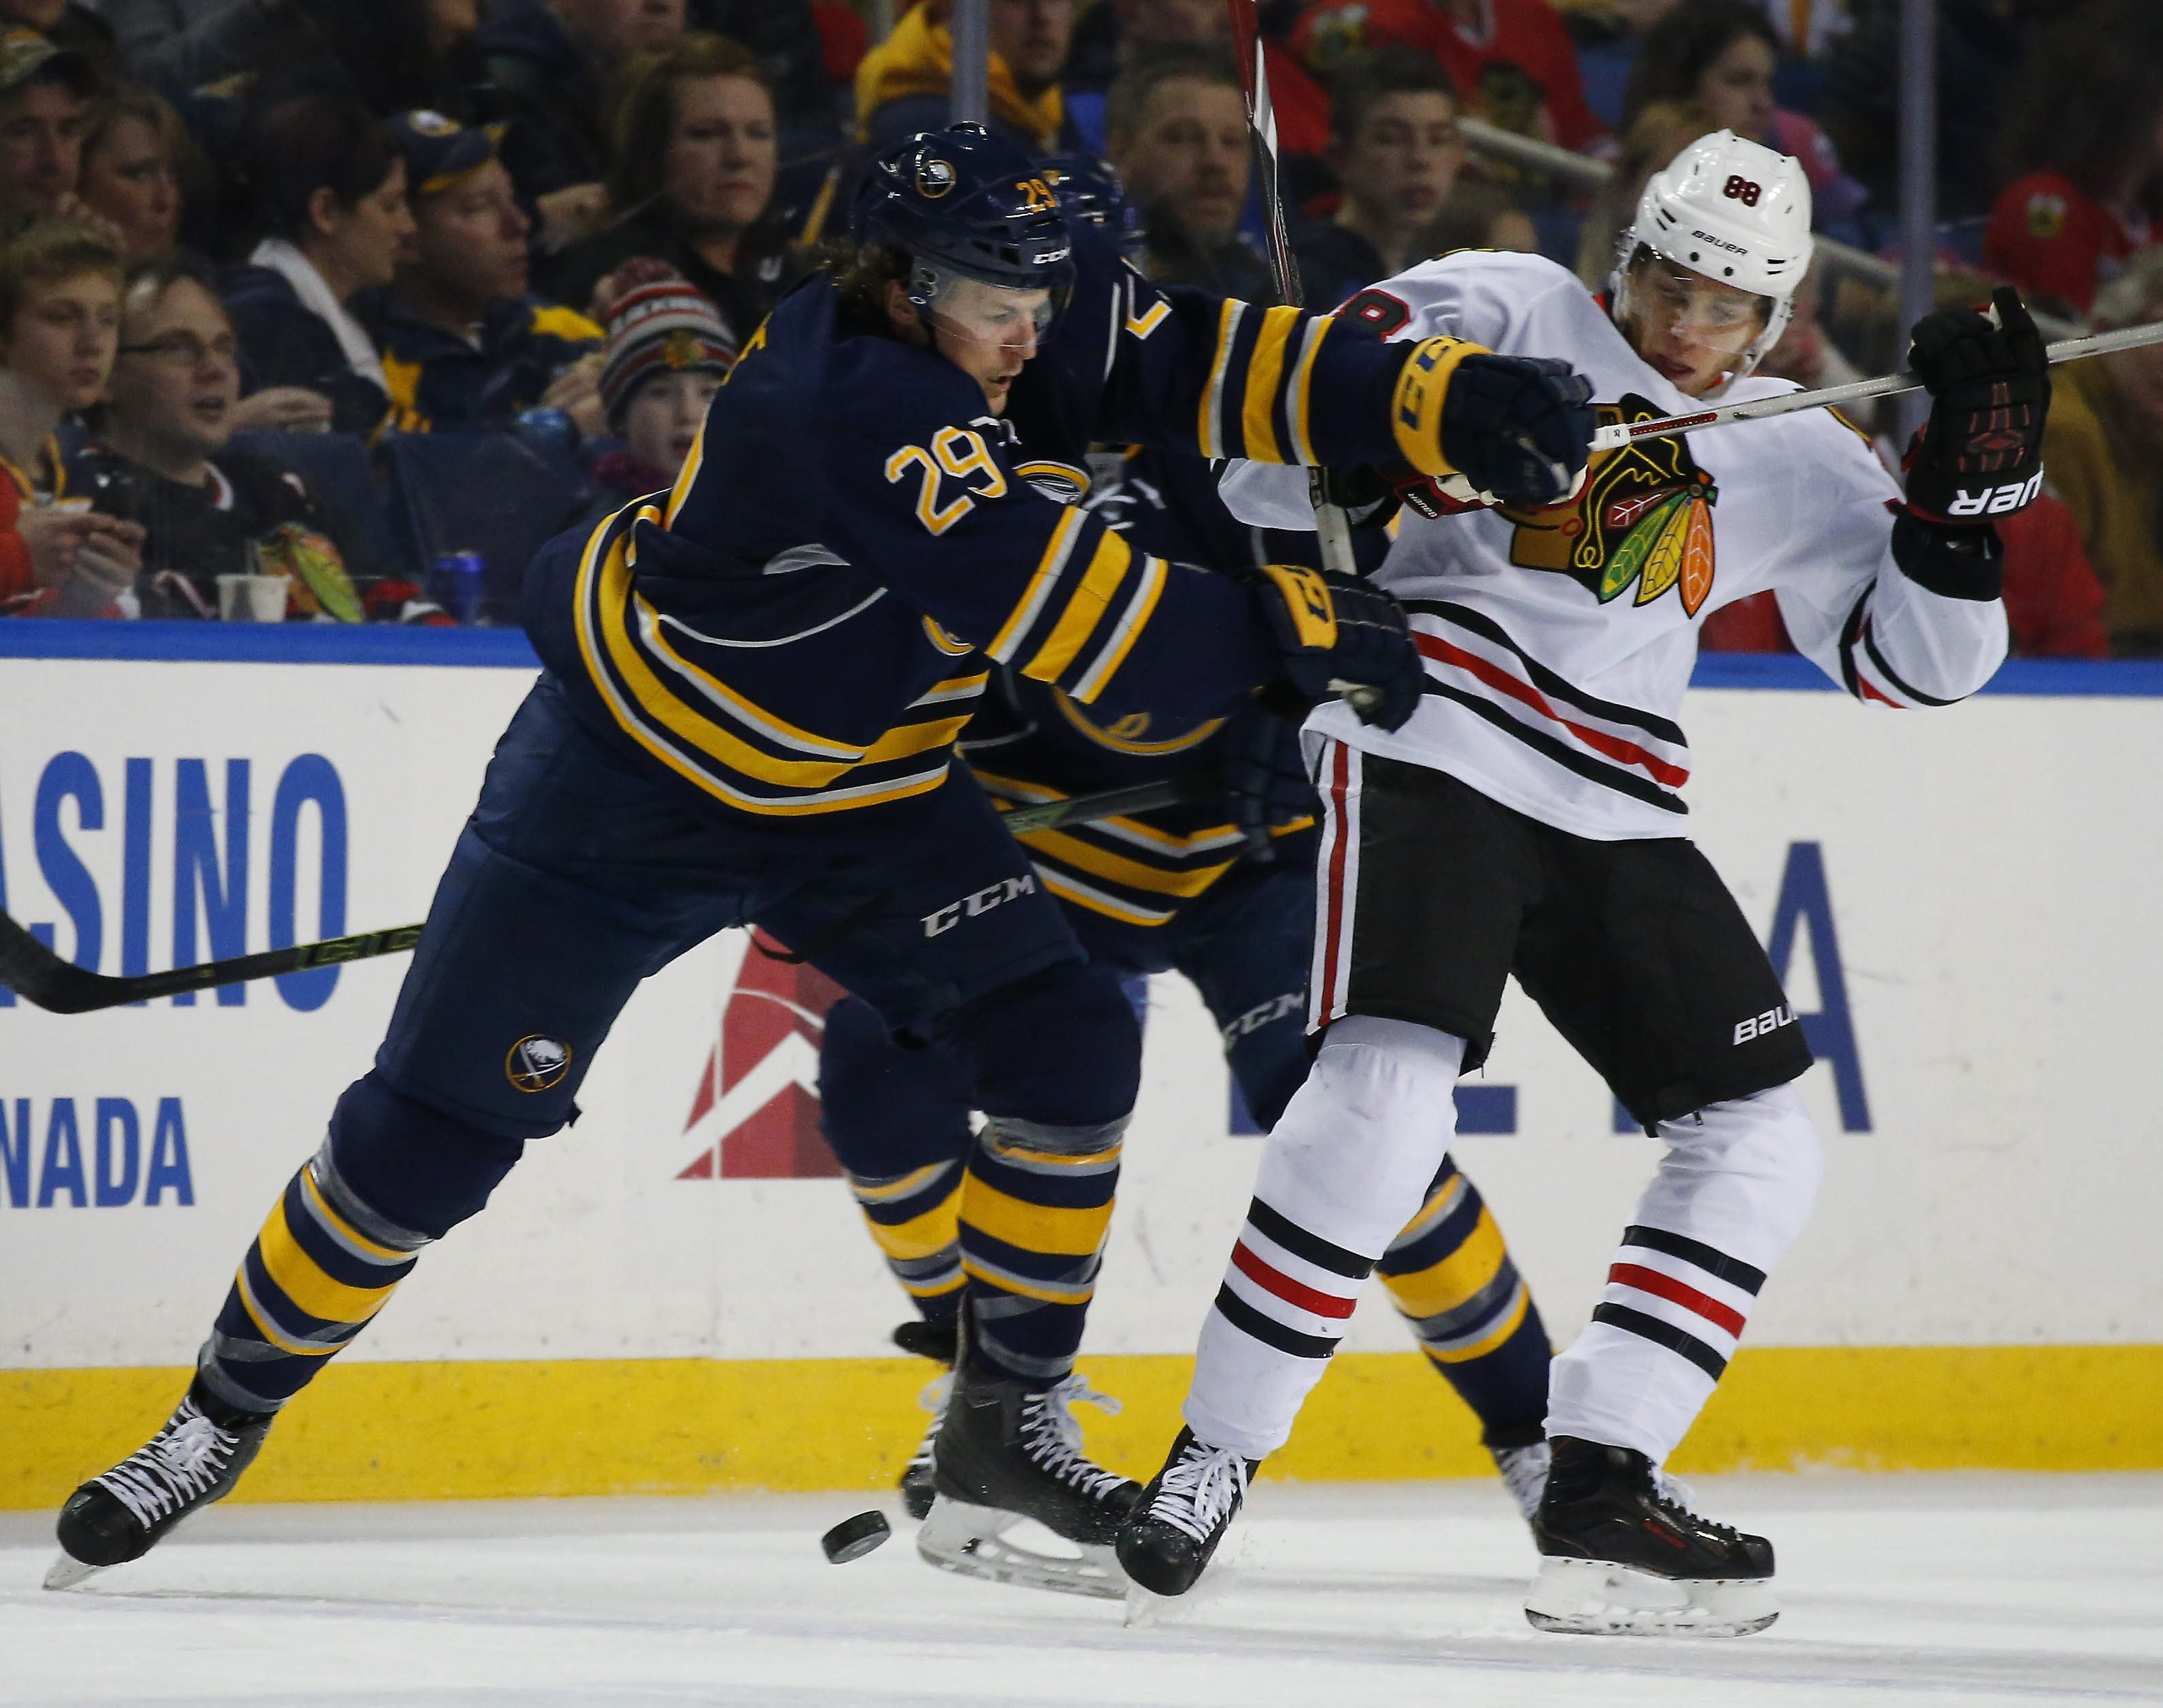 Sabres defenseman Jake McCabe keeps the Blackhawks' Patrick Kane away from the puck during Saturday afternoon's game at First Niagara Center.